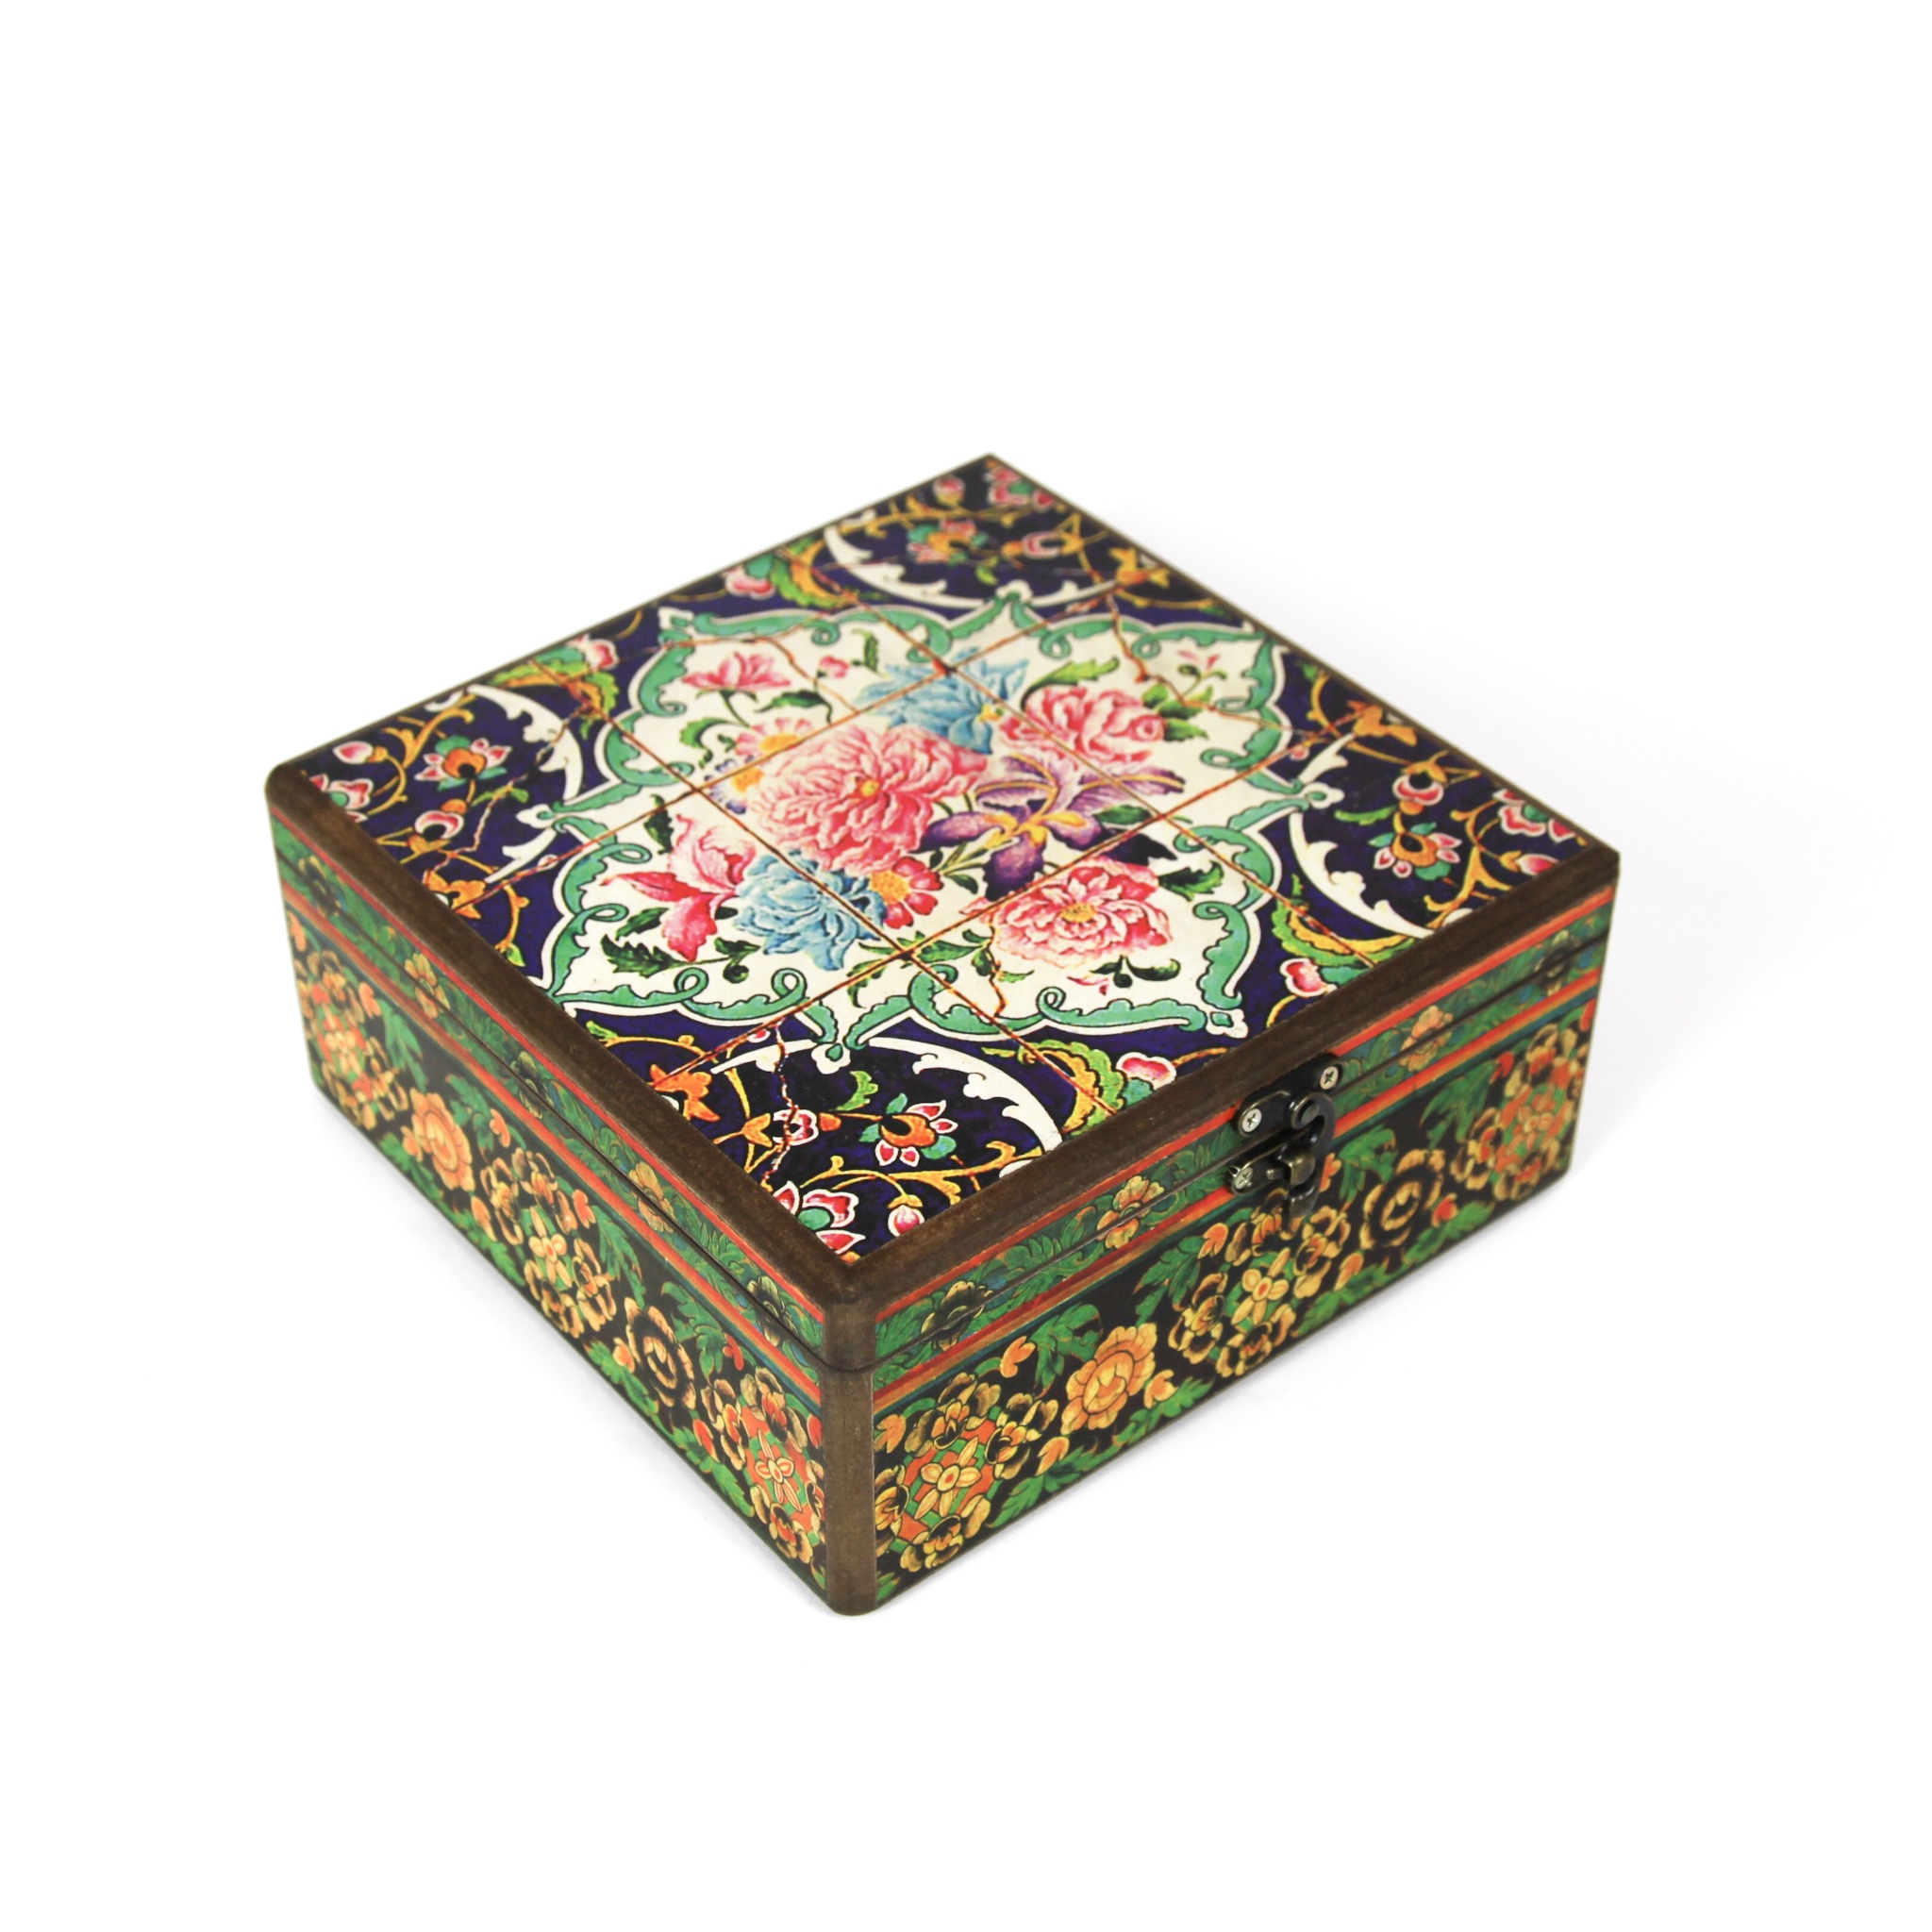 Wooden tea box with Iranian tile patterns 20cm x20cm (code 05)